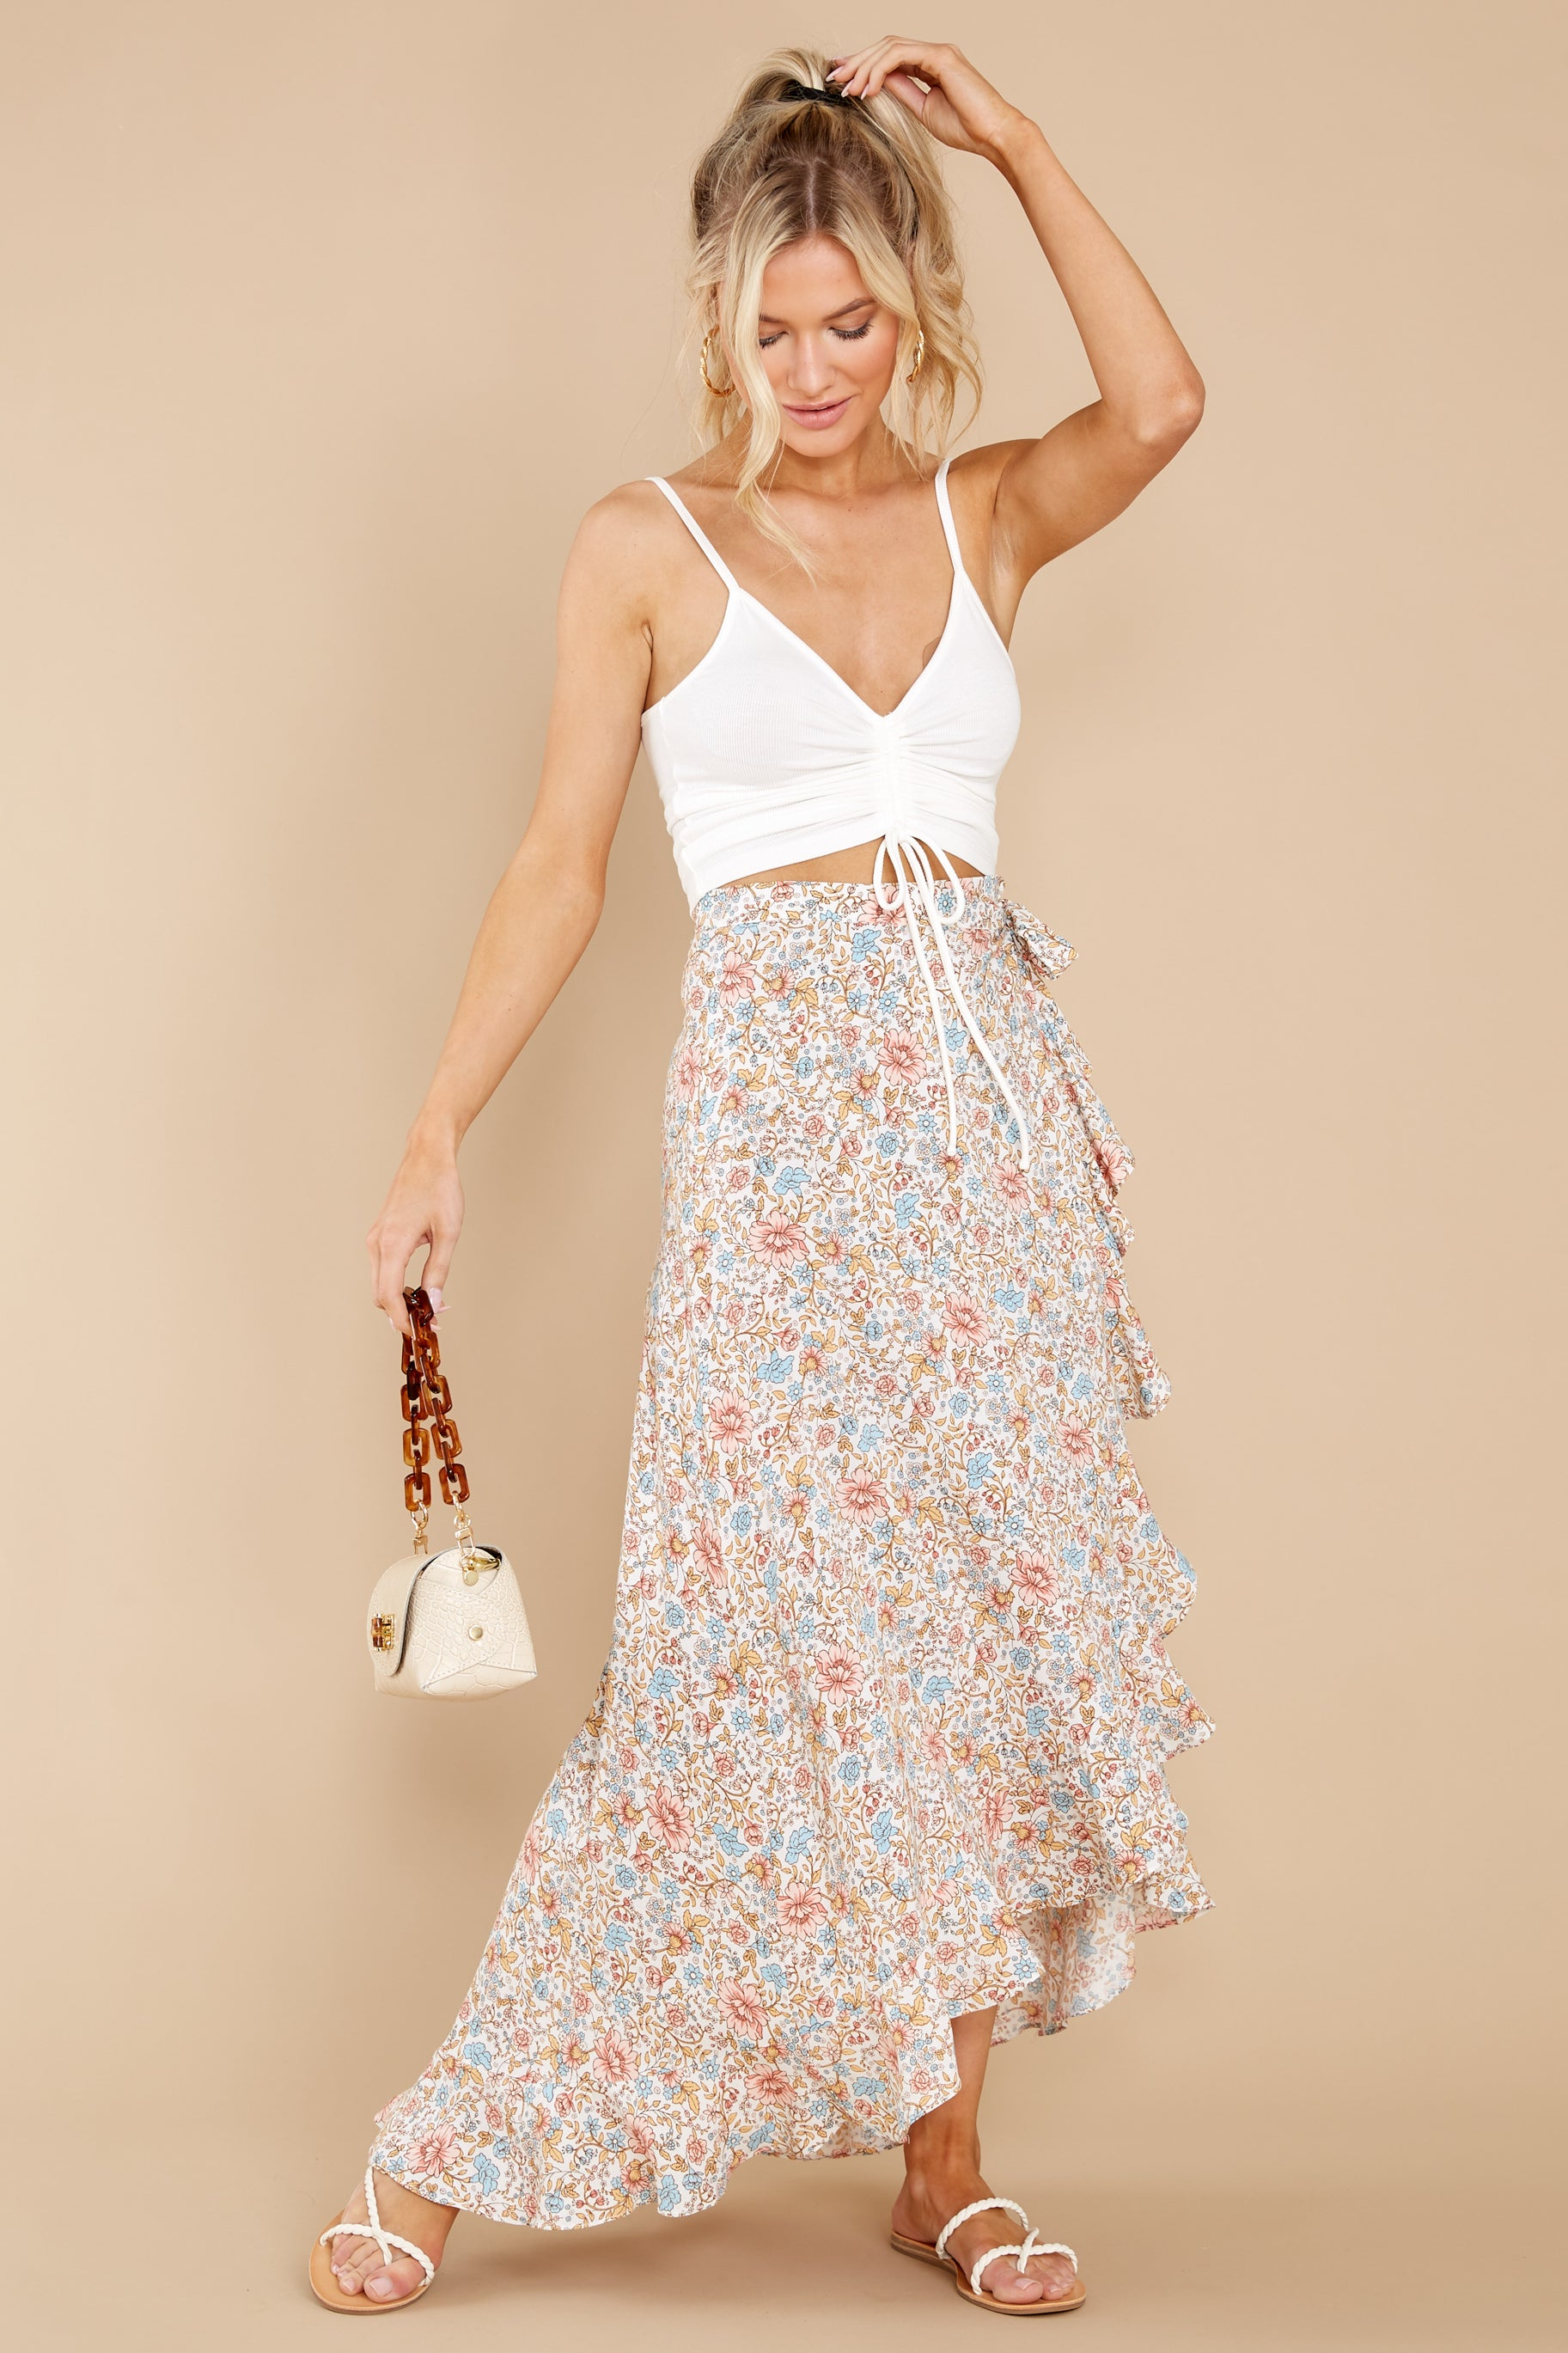 4 Boardwalk Stroll White Floral Print Skirt at reddress.com